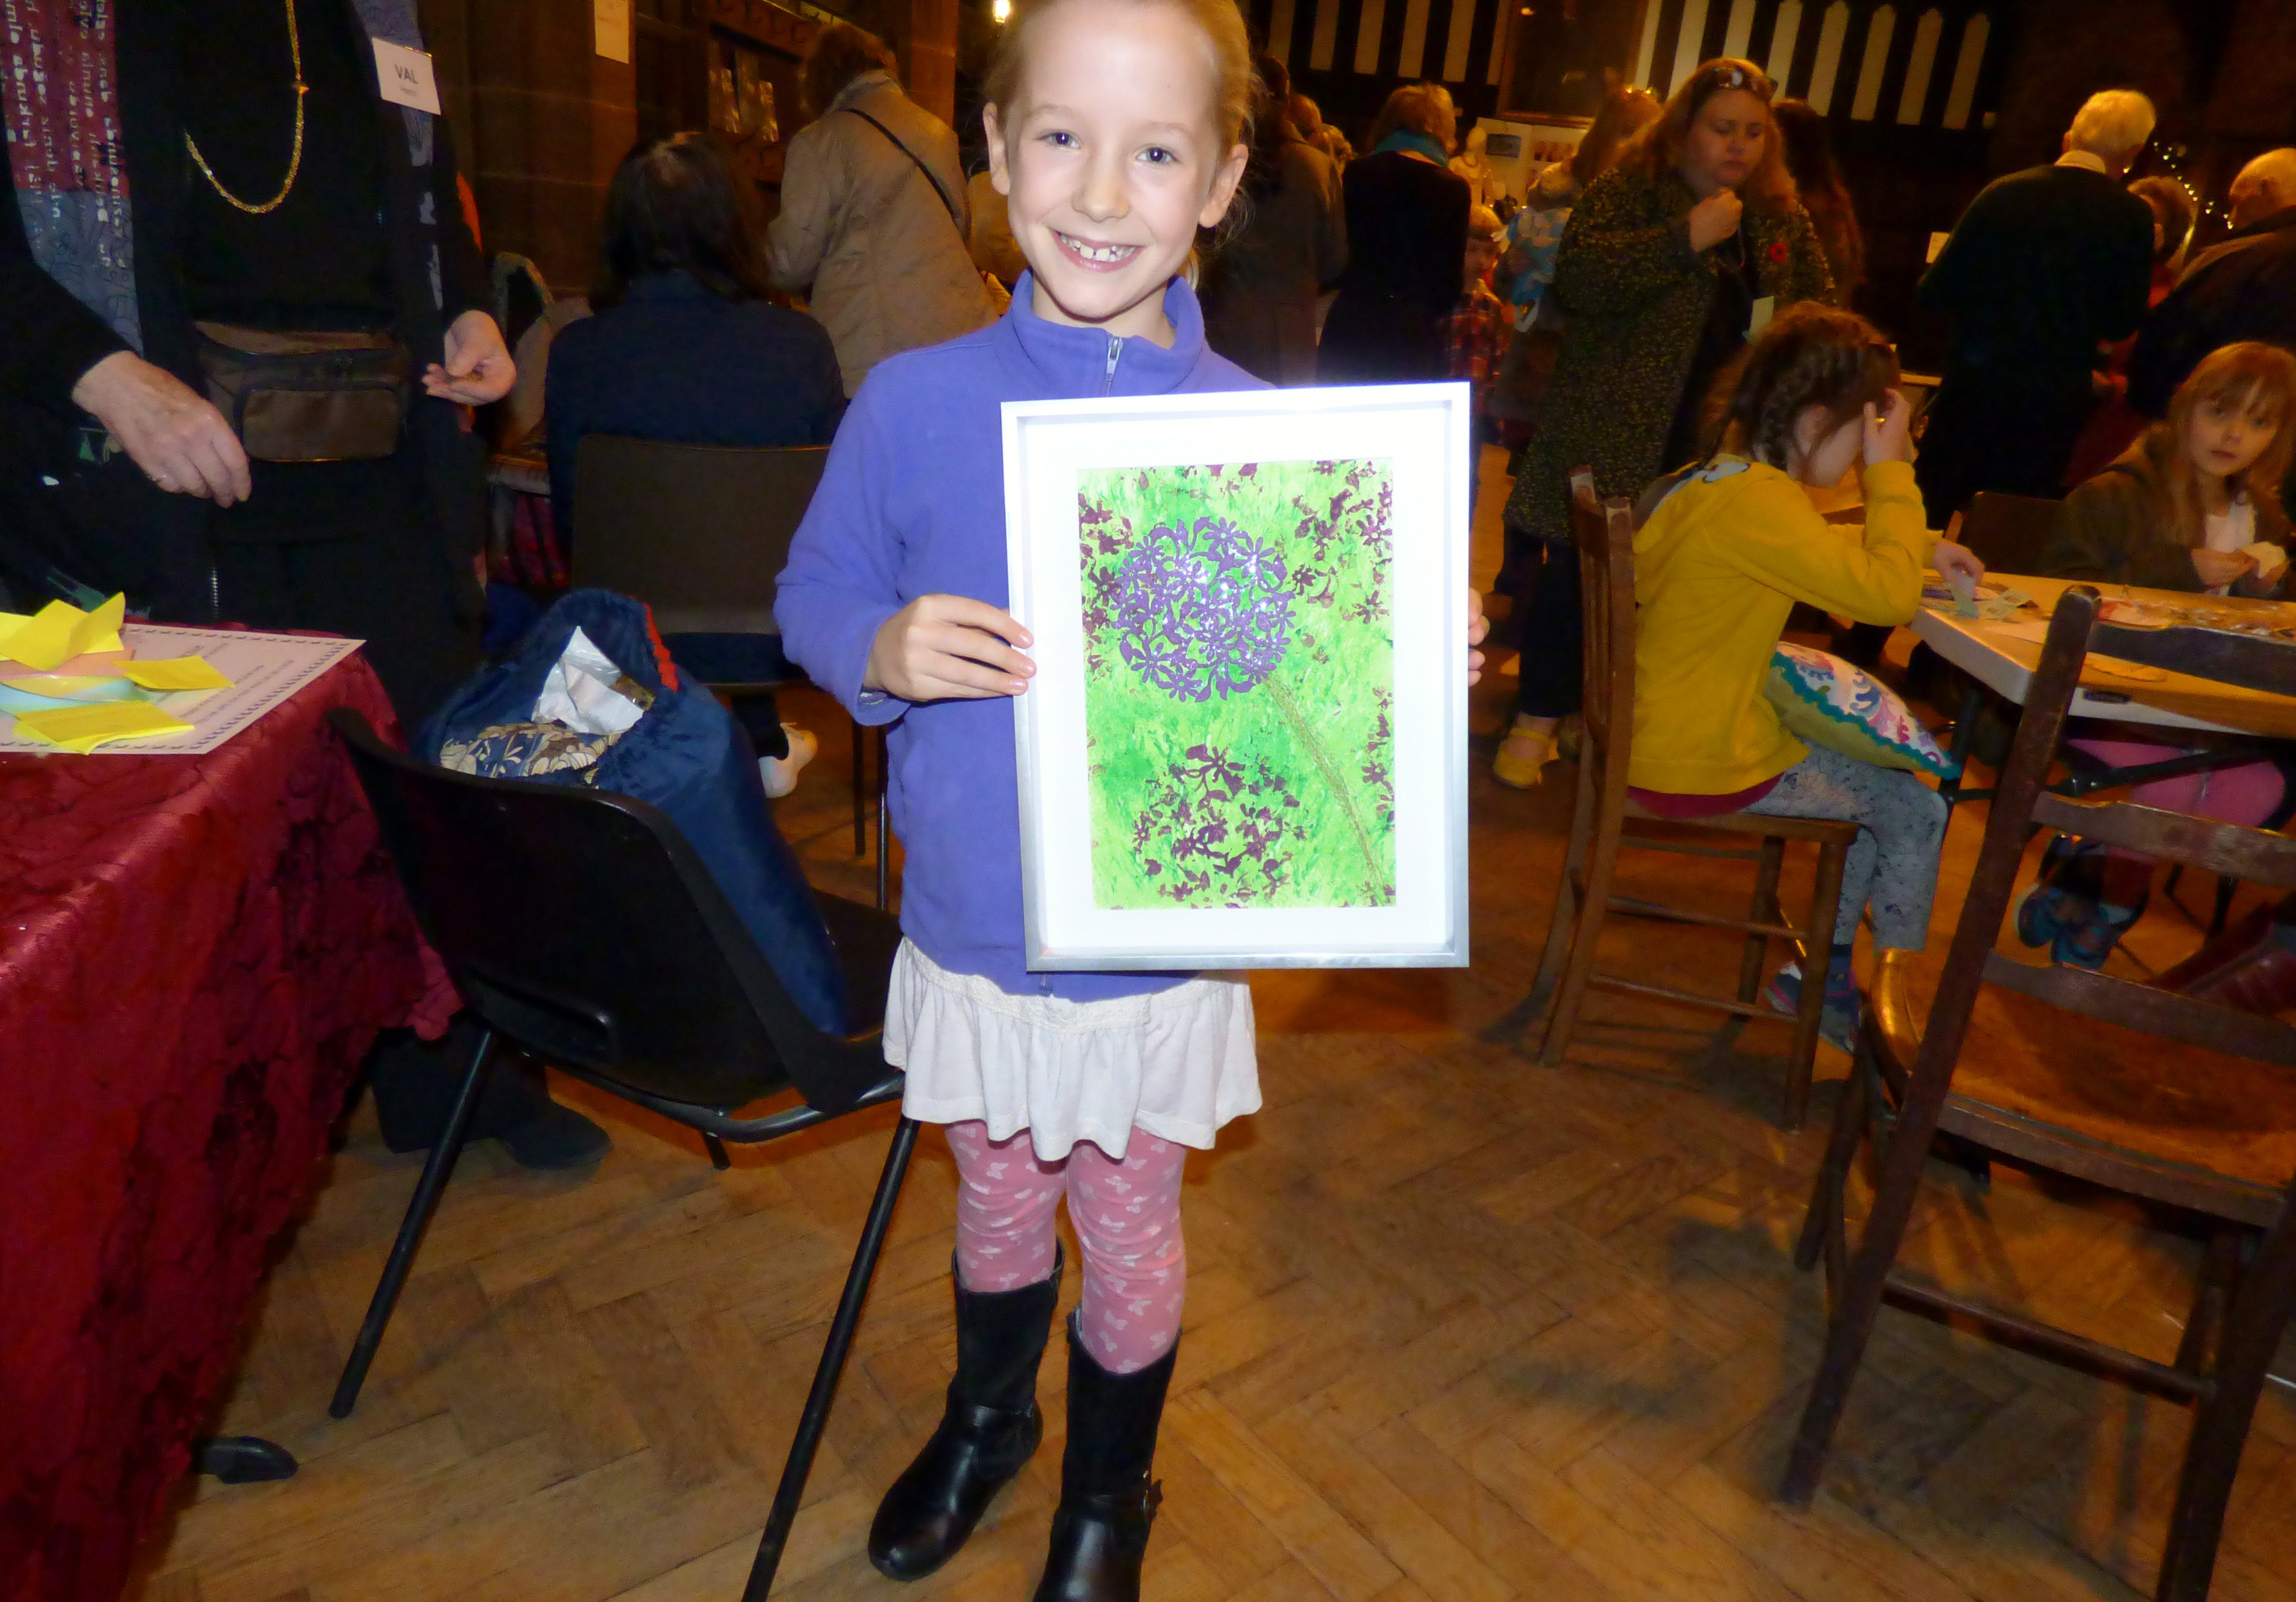 Esther Lewis with her winning entry to YE competition at MEG Winter Fair 2016